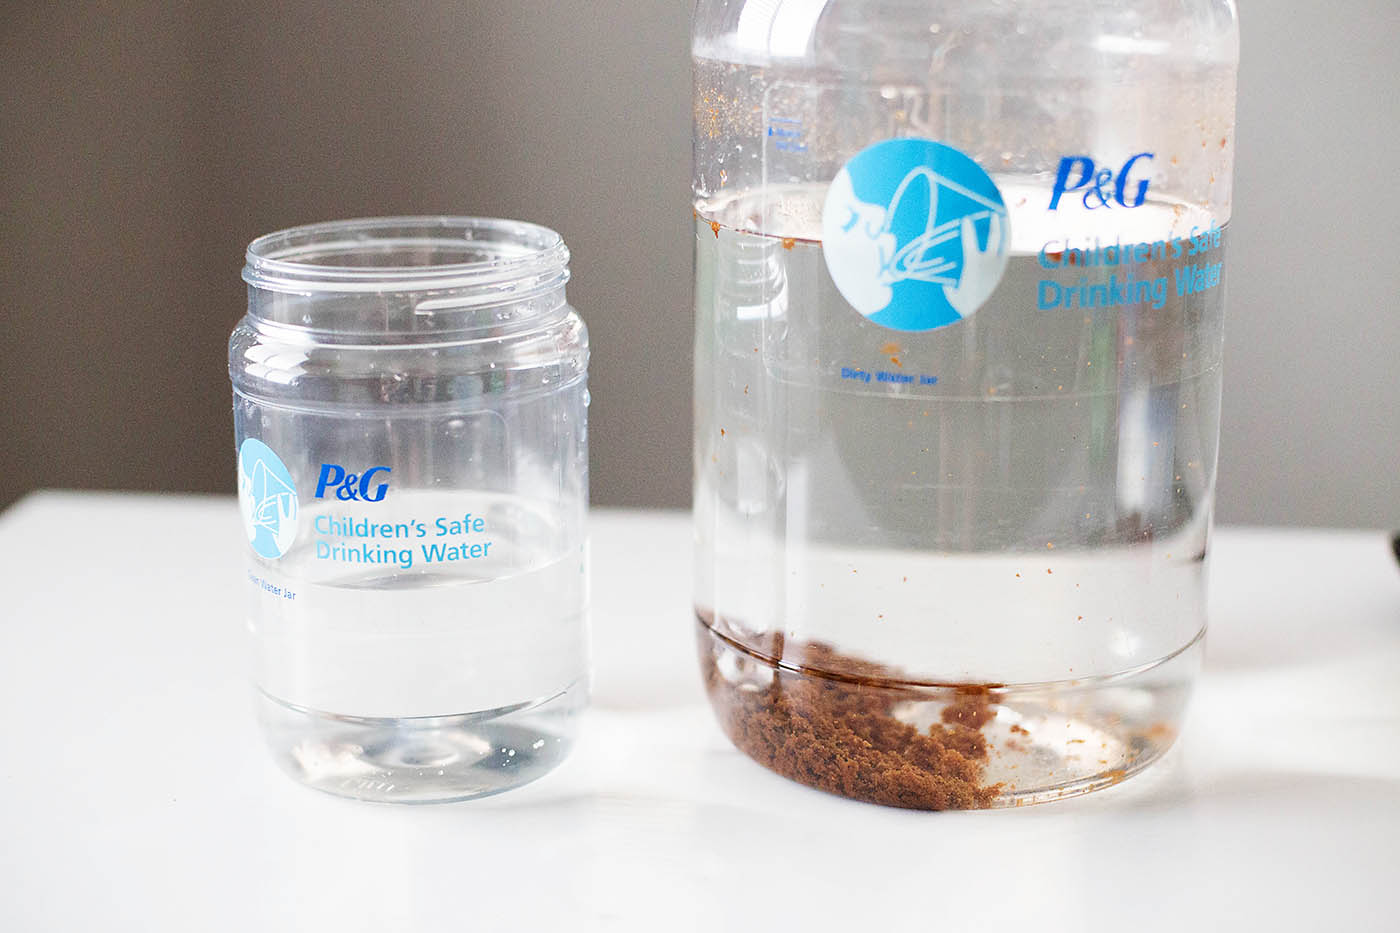 Help get safe drinking water to families who need it with P&G